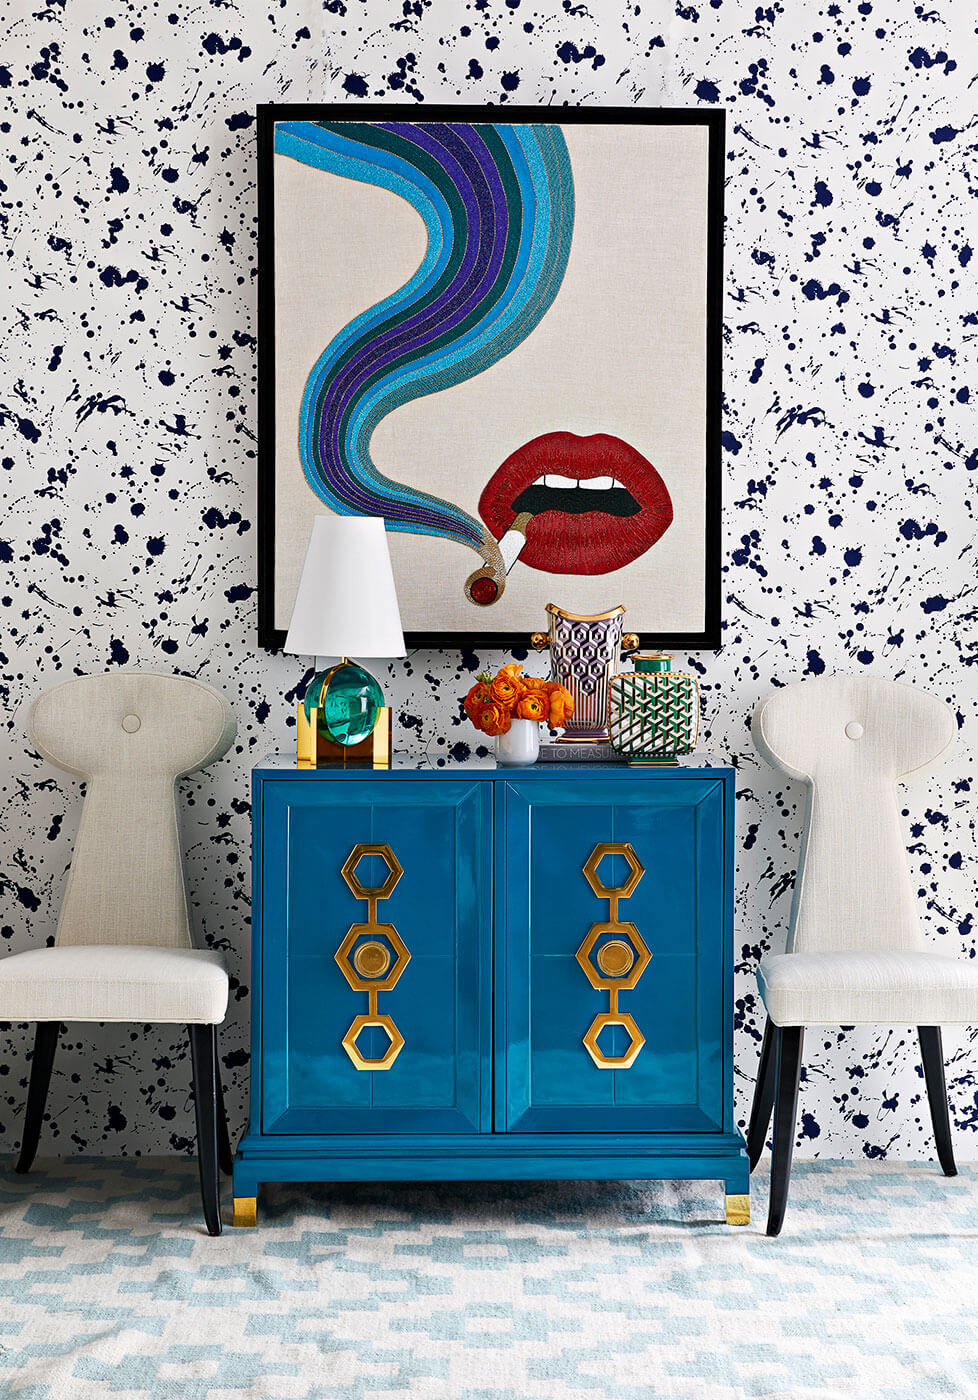 Custom Wall Art with a Freestanding Cabinet